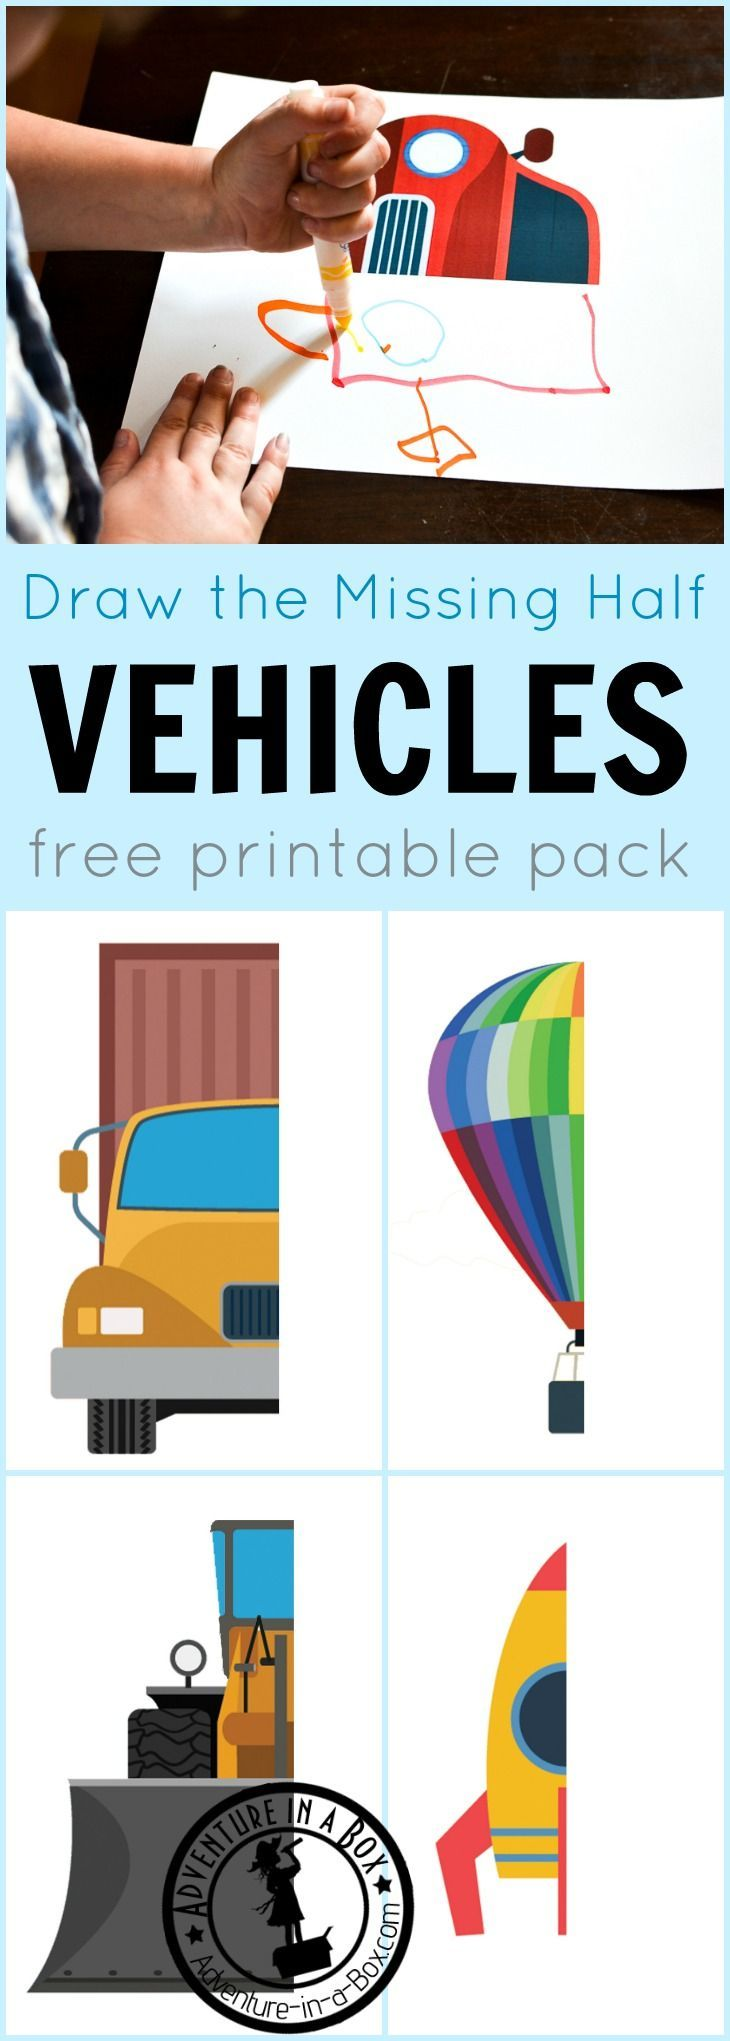 Draw the Missing Half: Vehicles | Pinterest | Prompts, Free ...